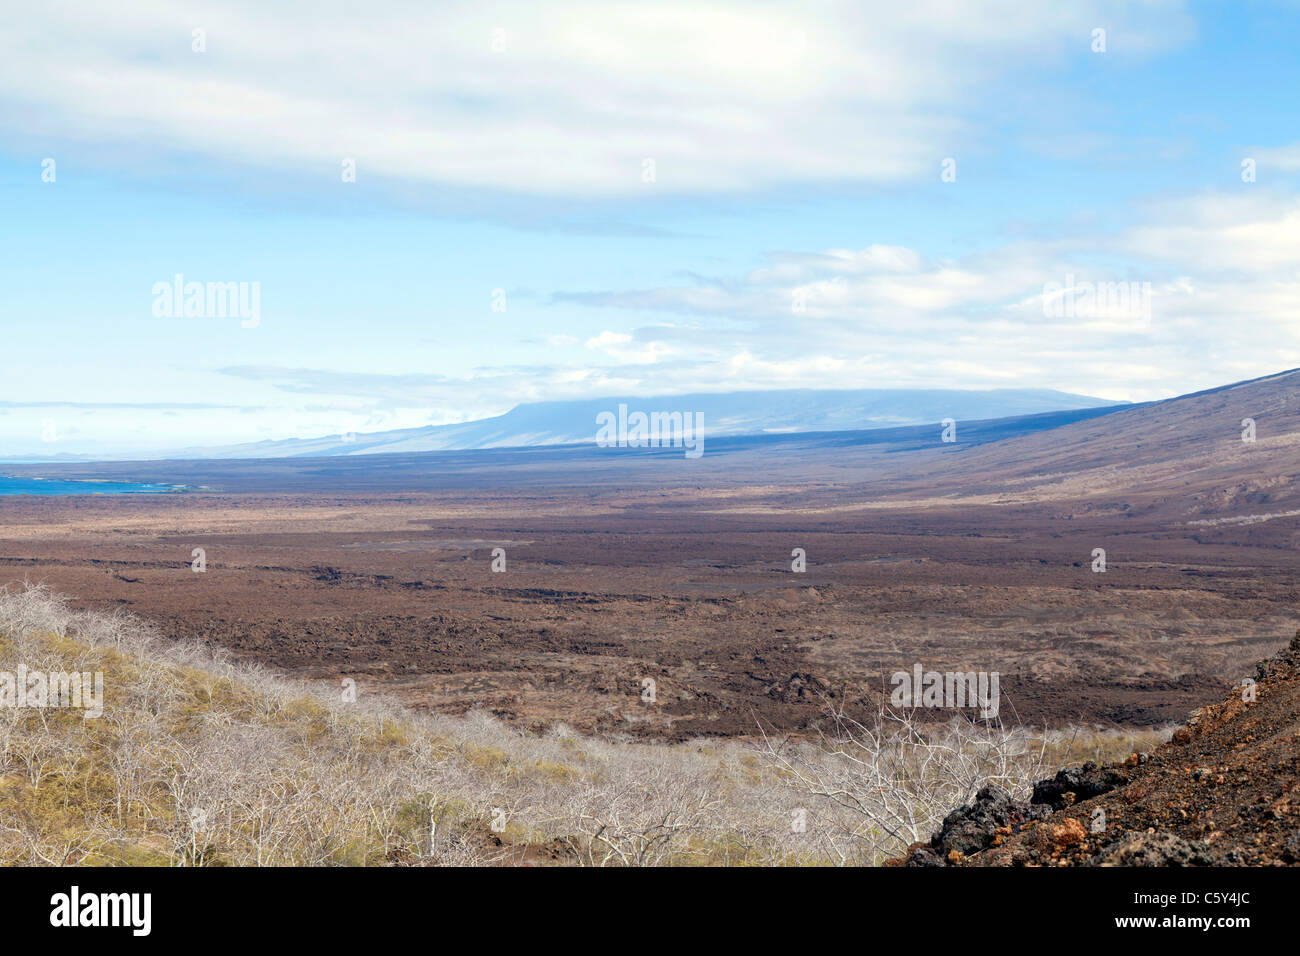 View over the lava field on Isabella Island, near Tagus Cove, Galapagos - Stock Image